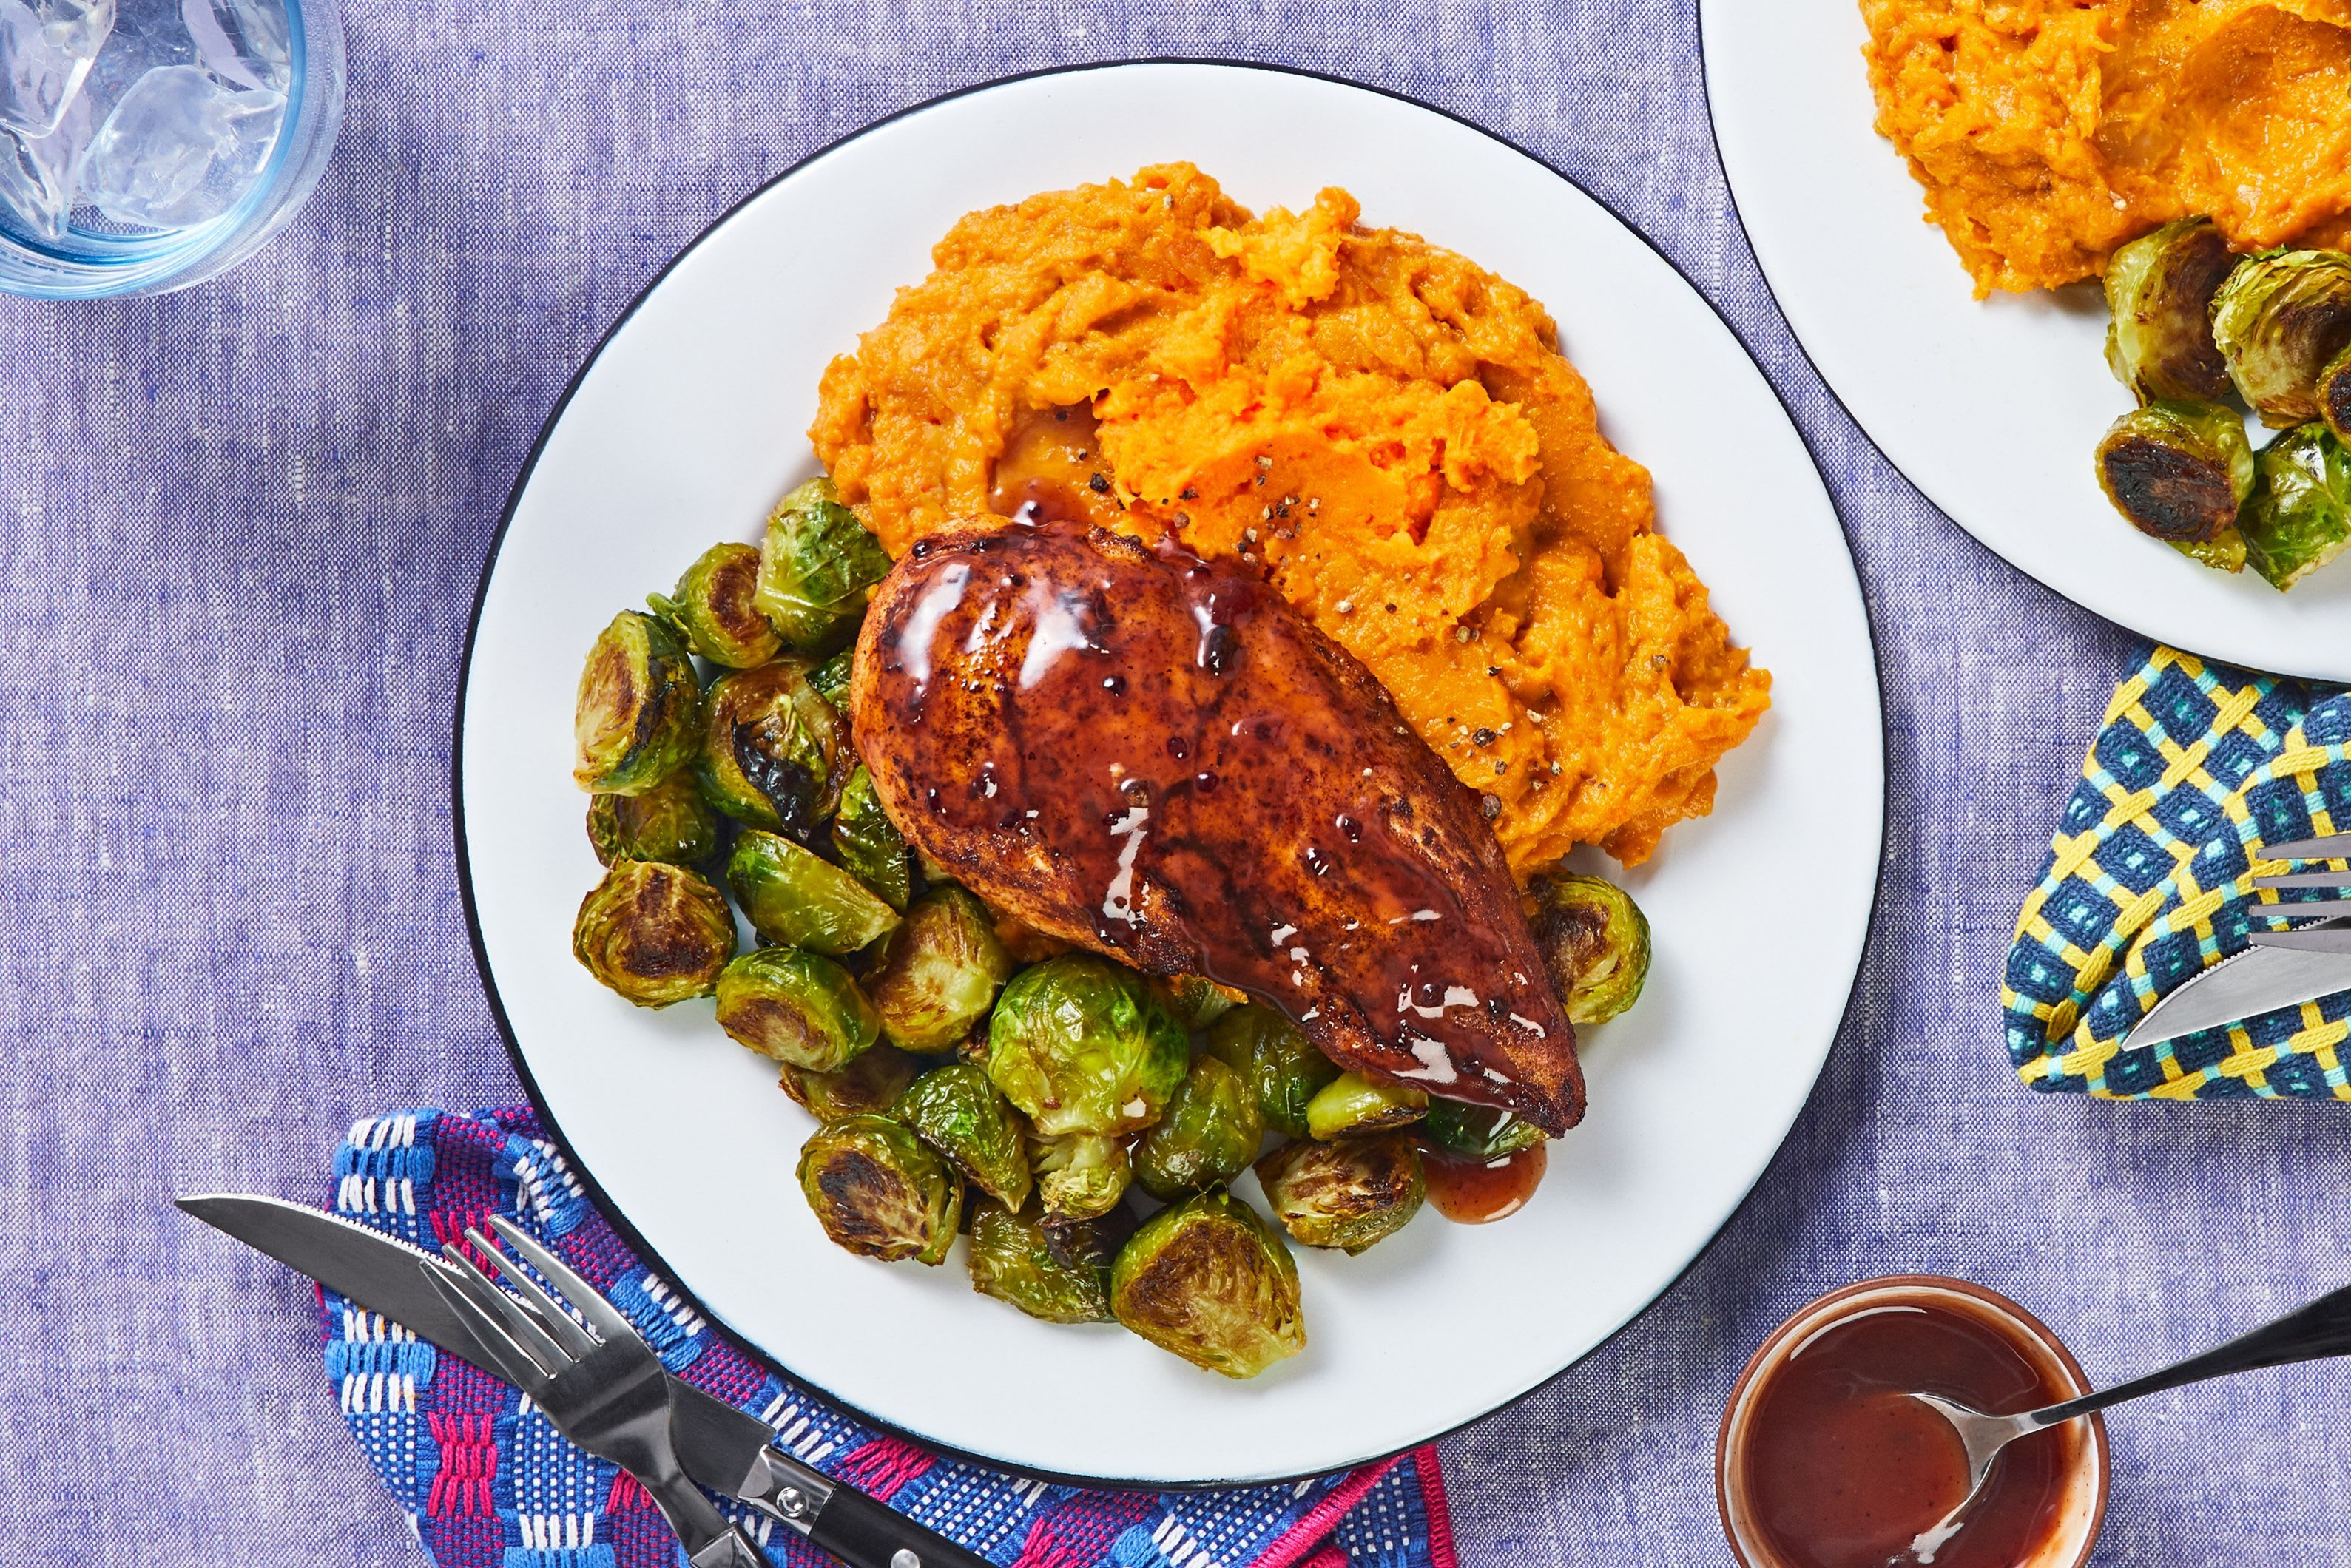 Baked Chicken And Sweet Potato Mashed Potatoes Recipe Hellofresh Recipe Hello Fresh Recipes Mashed Sweet Potatoes Baked Chicken